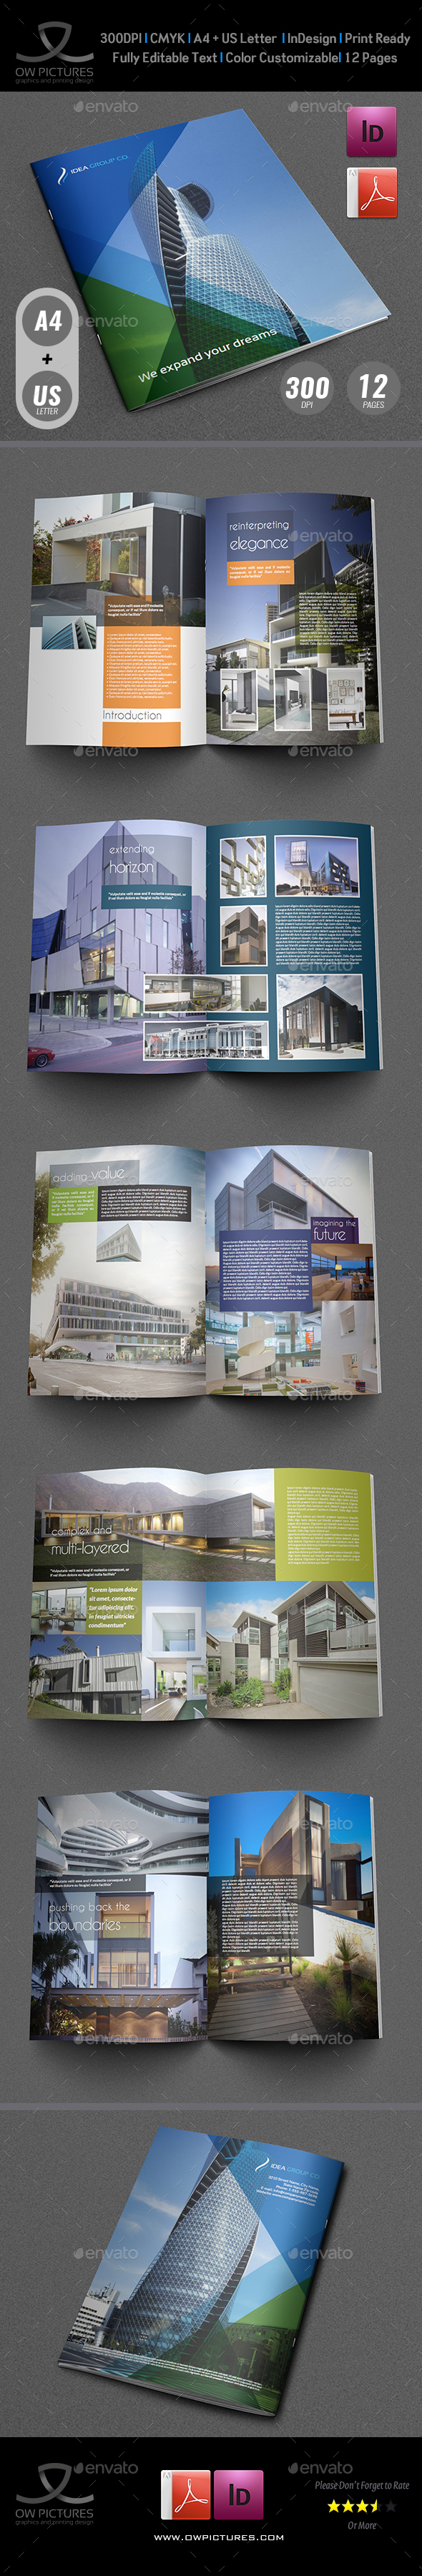 Architectural Brochure Template - 12 Pages - Brochures Print Templates